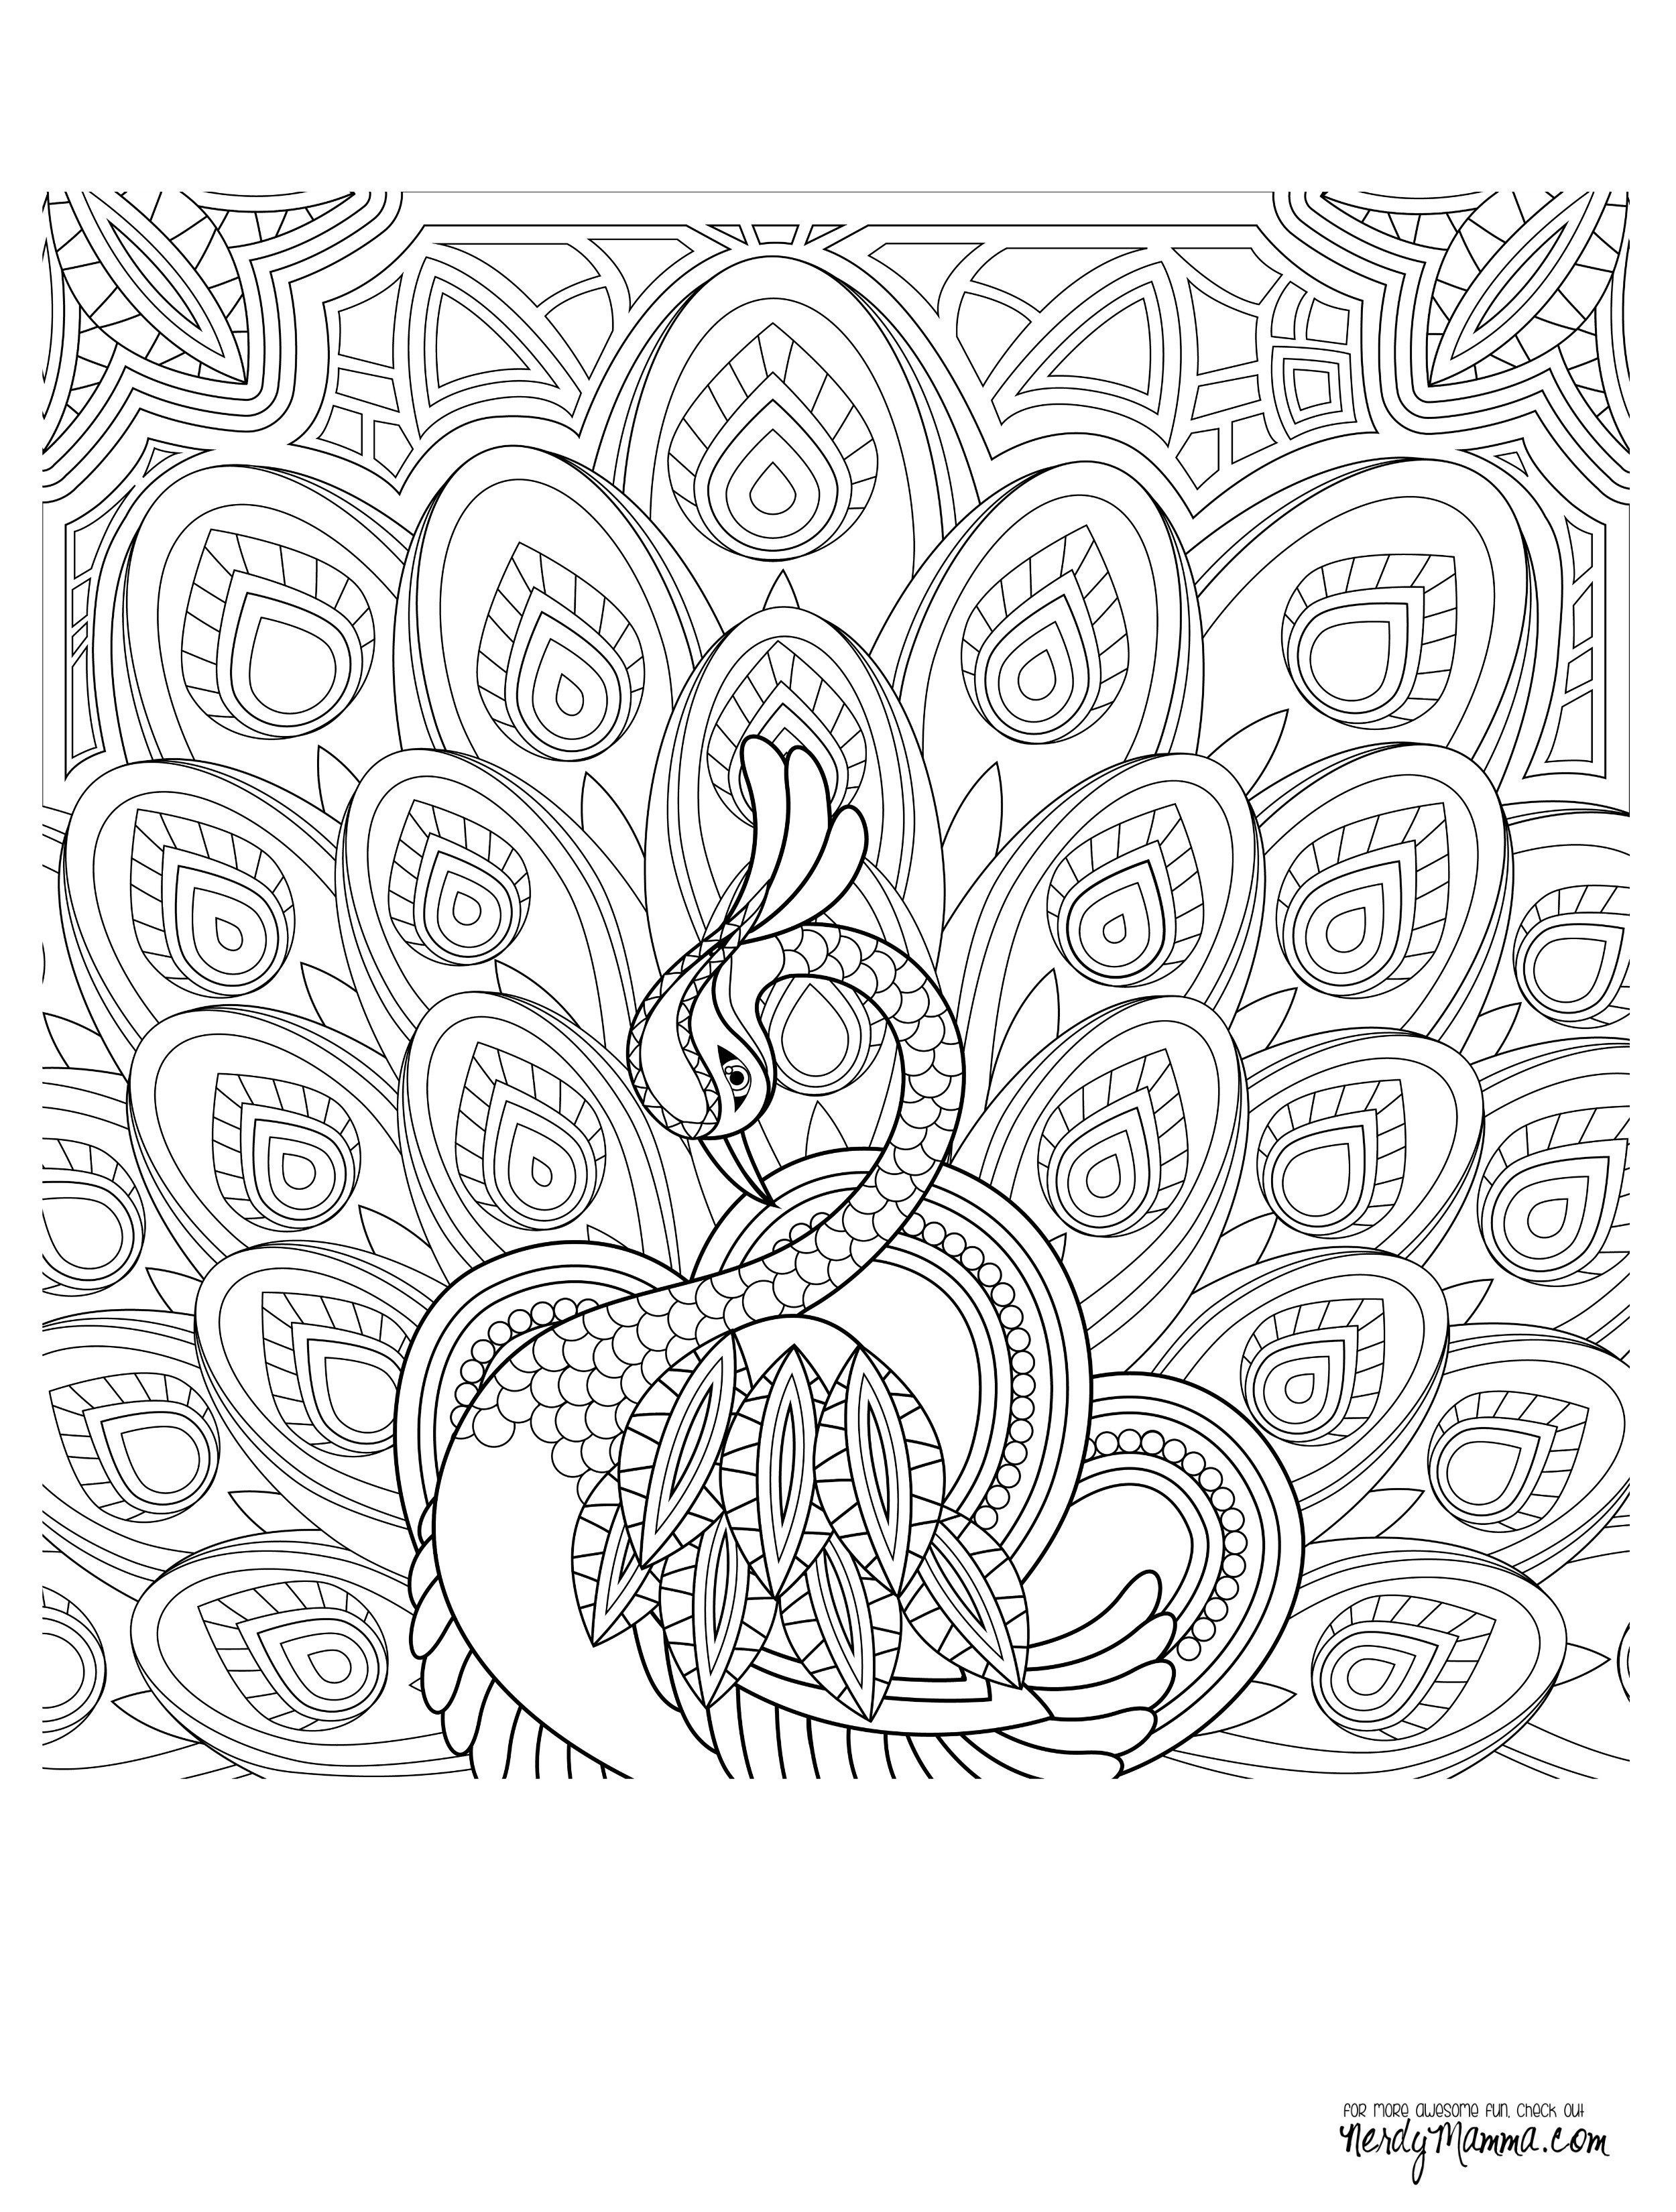 free number coloring pages Collection-Coloring Pages Number 5 Colouring In New New Colouring Family C3 82 C2 A0 0d Free Coloring 5-l